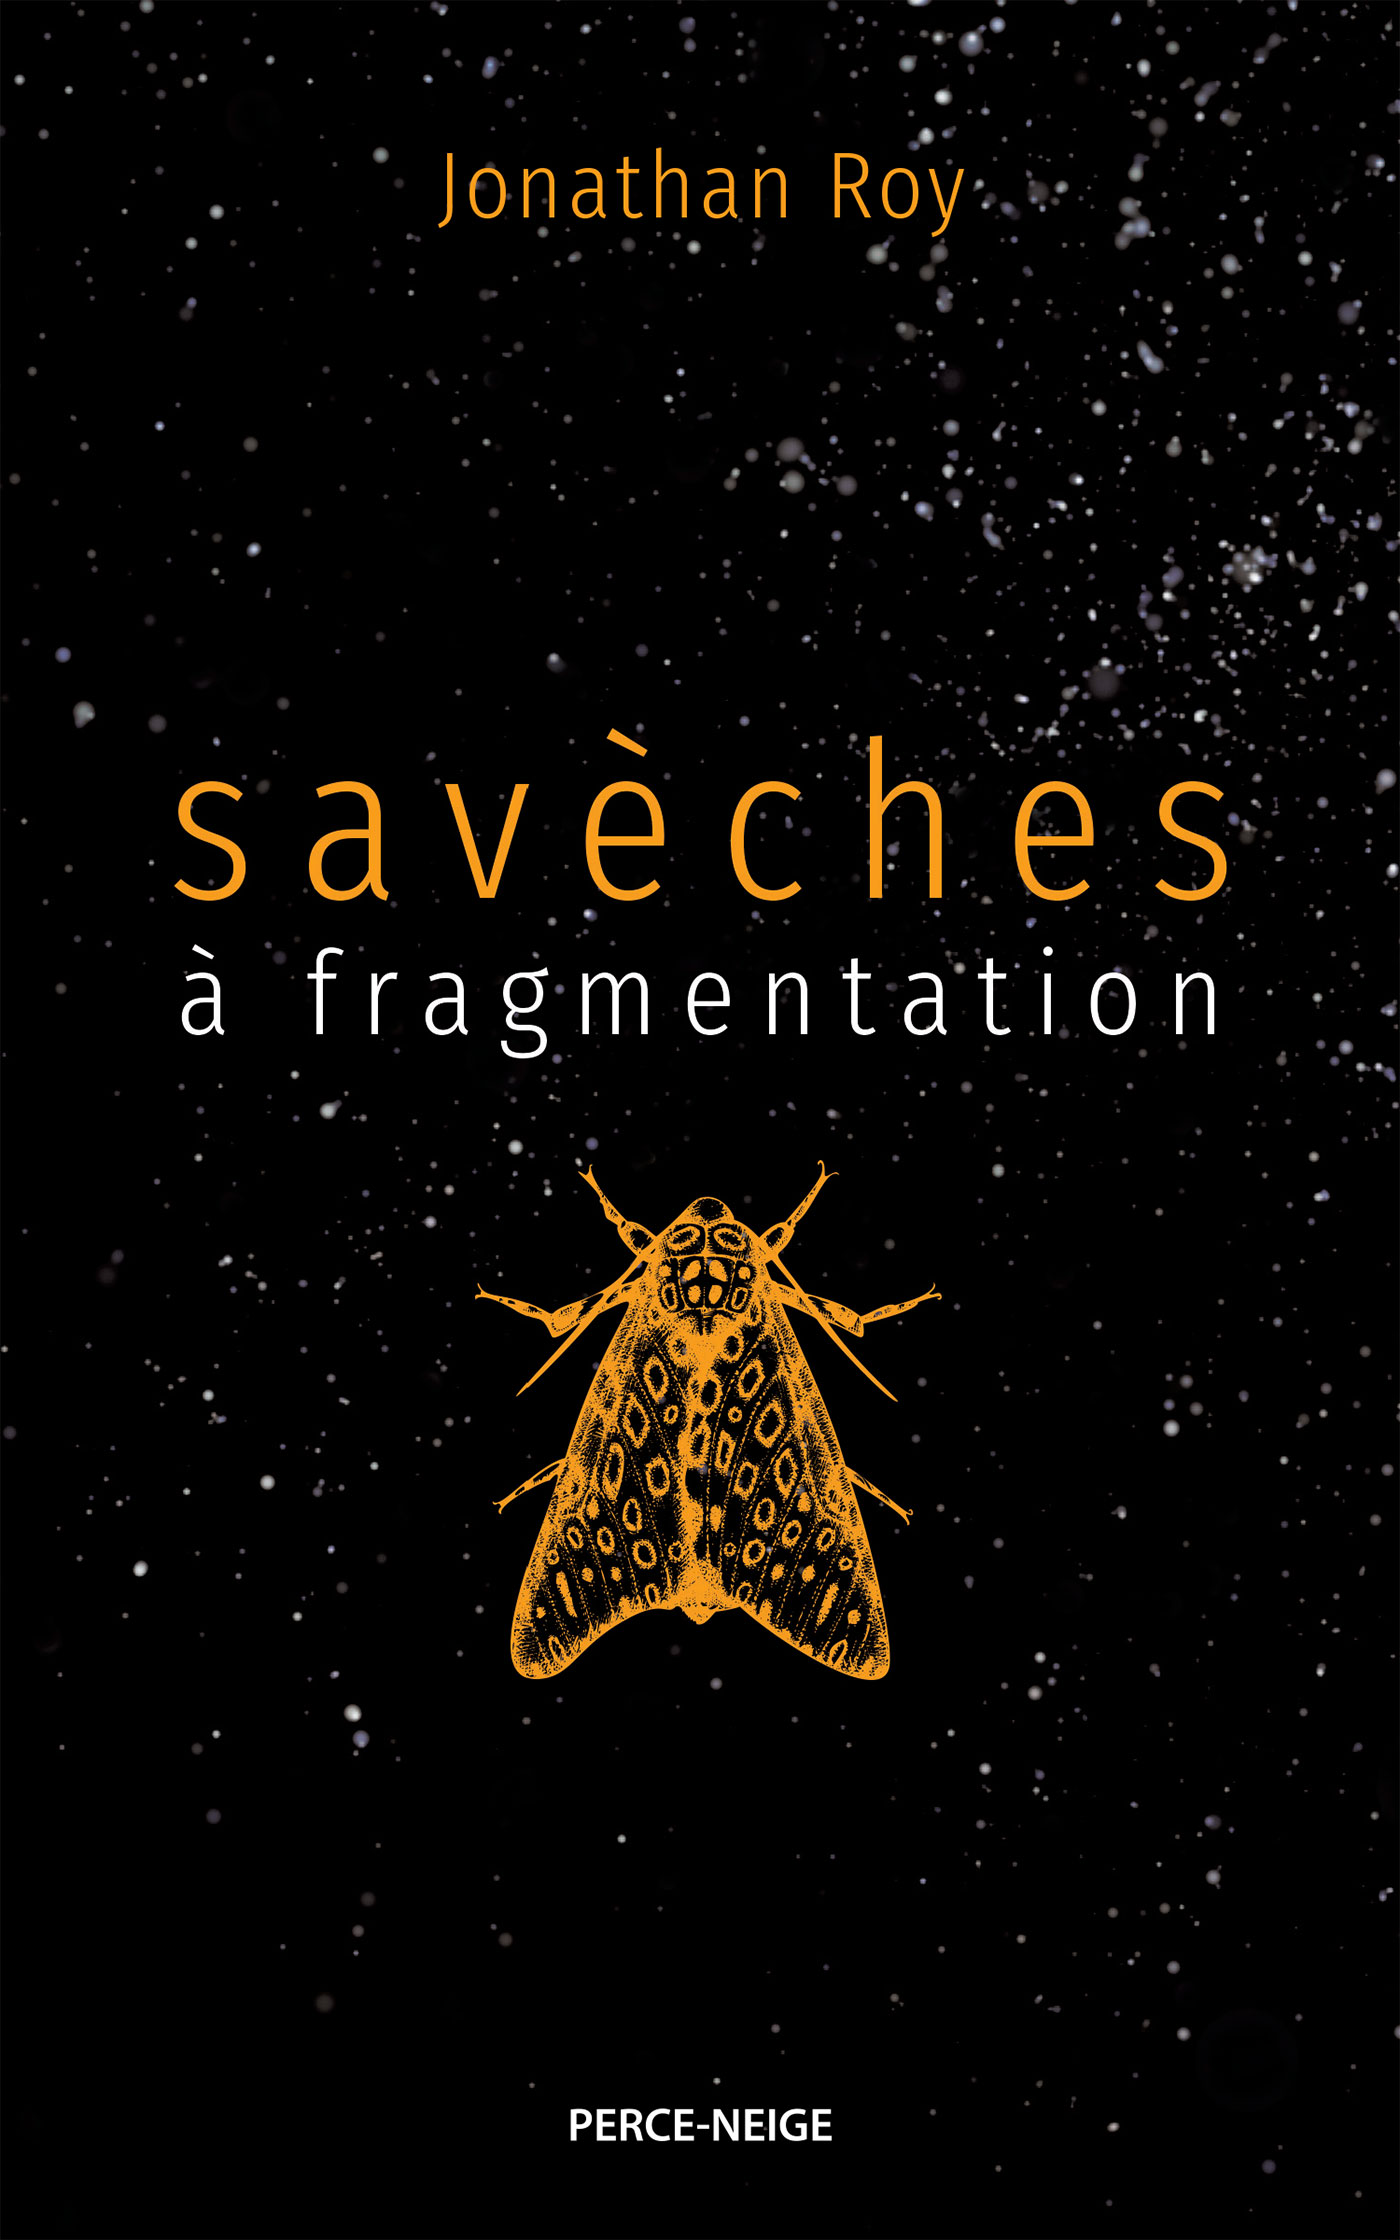 Savèches à fragmentation